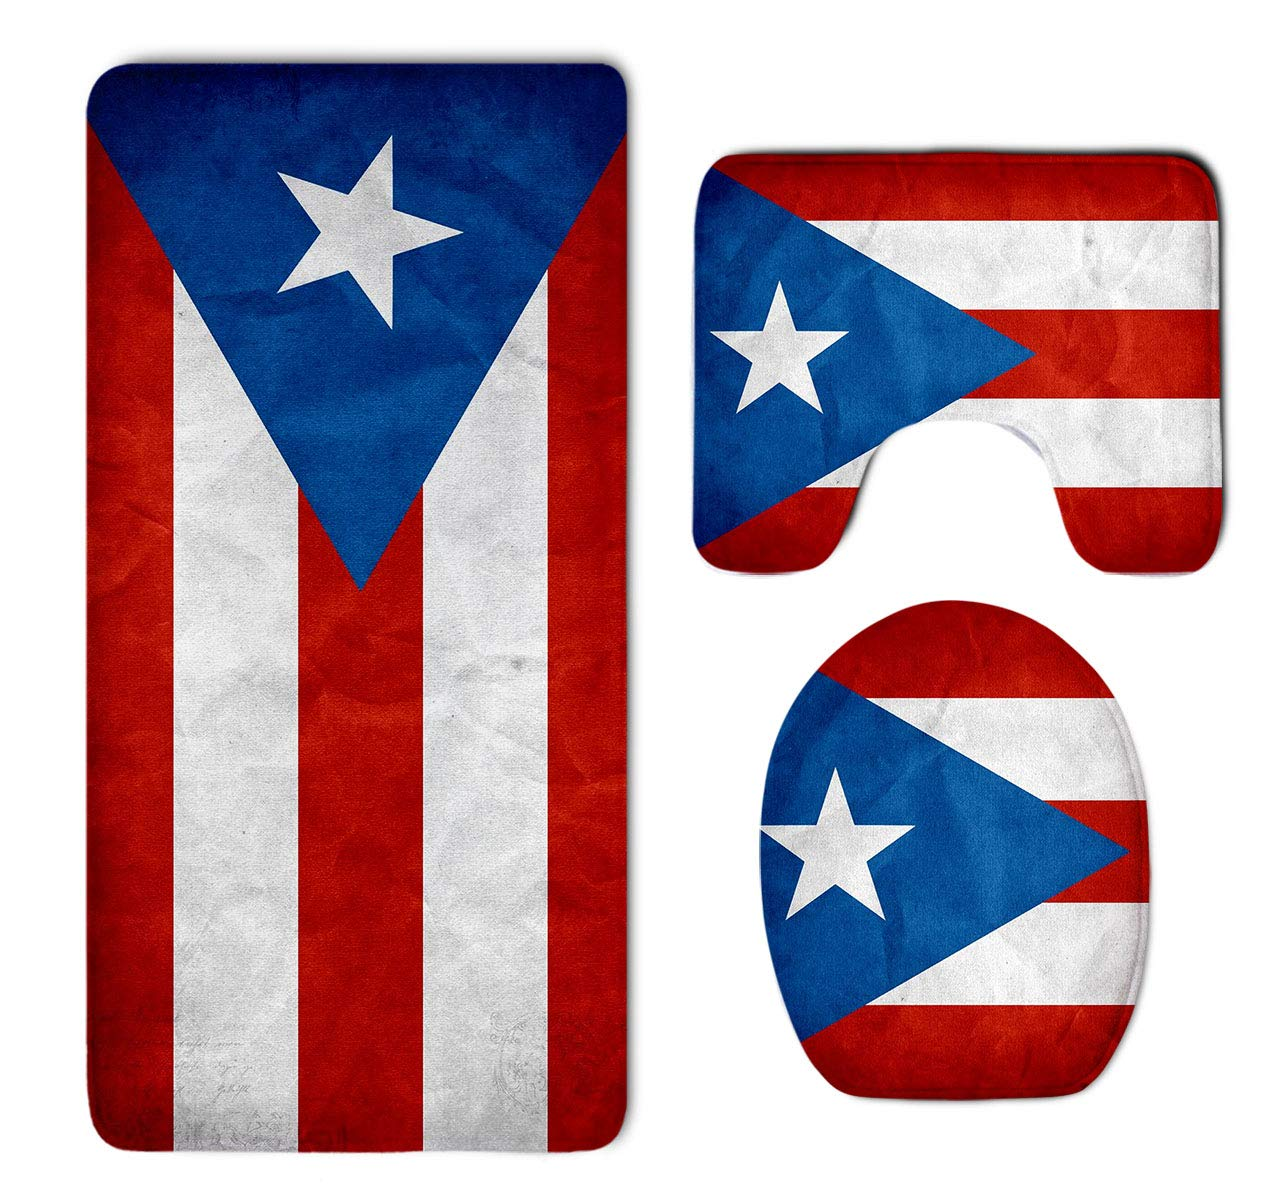 Amazon com homestores puerto rico flag bathroom 3 piece mat sets pedestal mat lid toilet cover bath mat doormat non slip rug garden outdoor